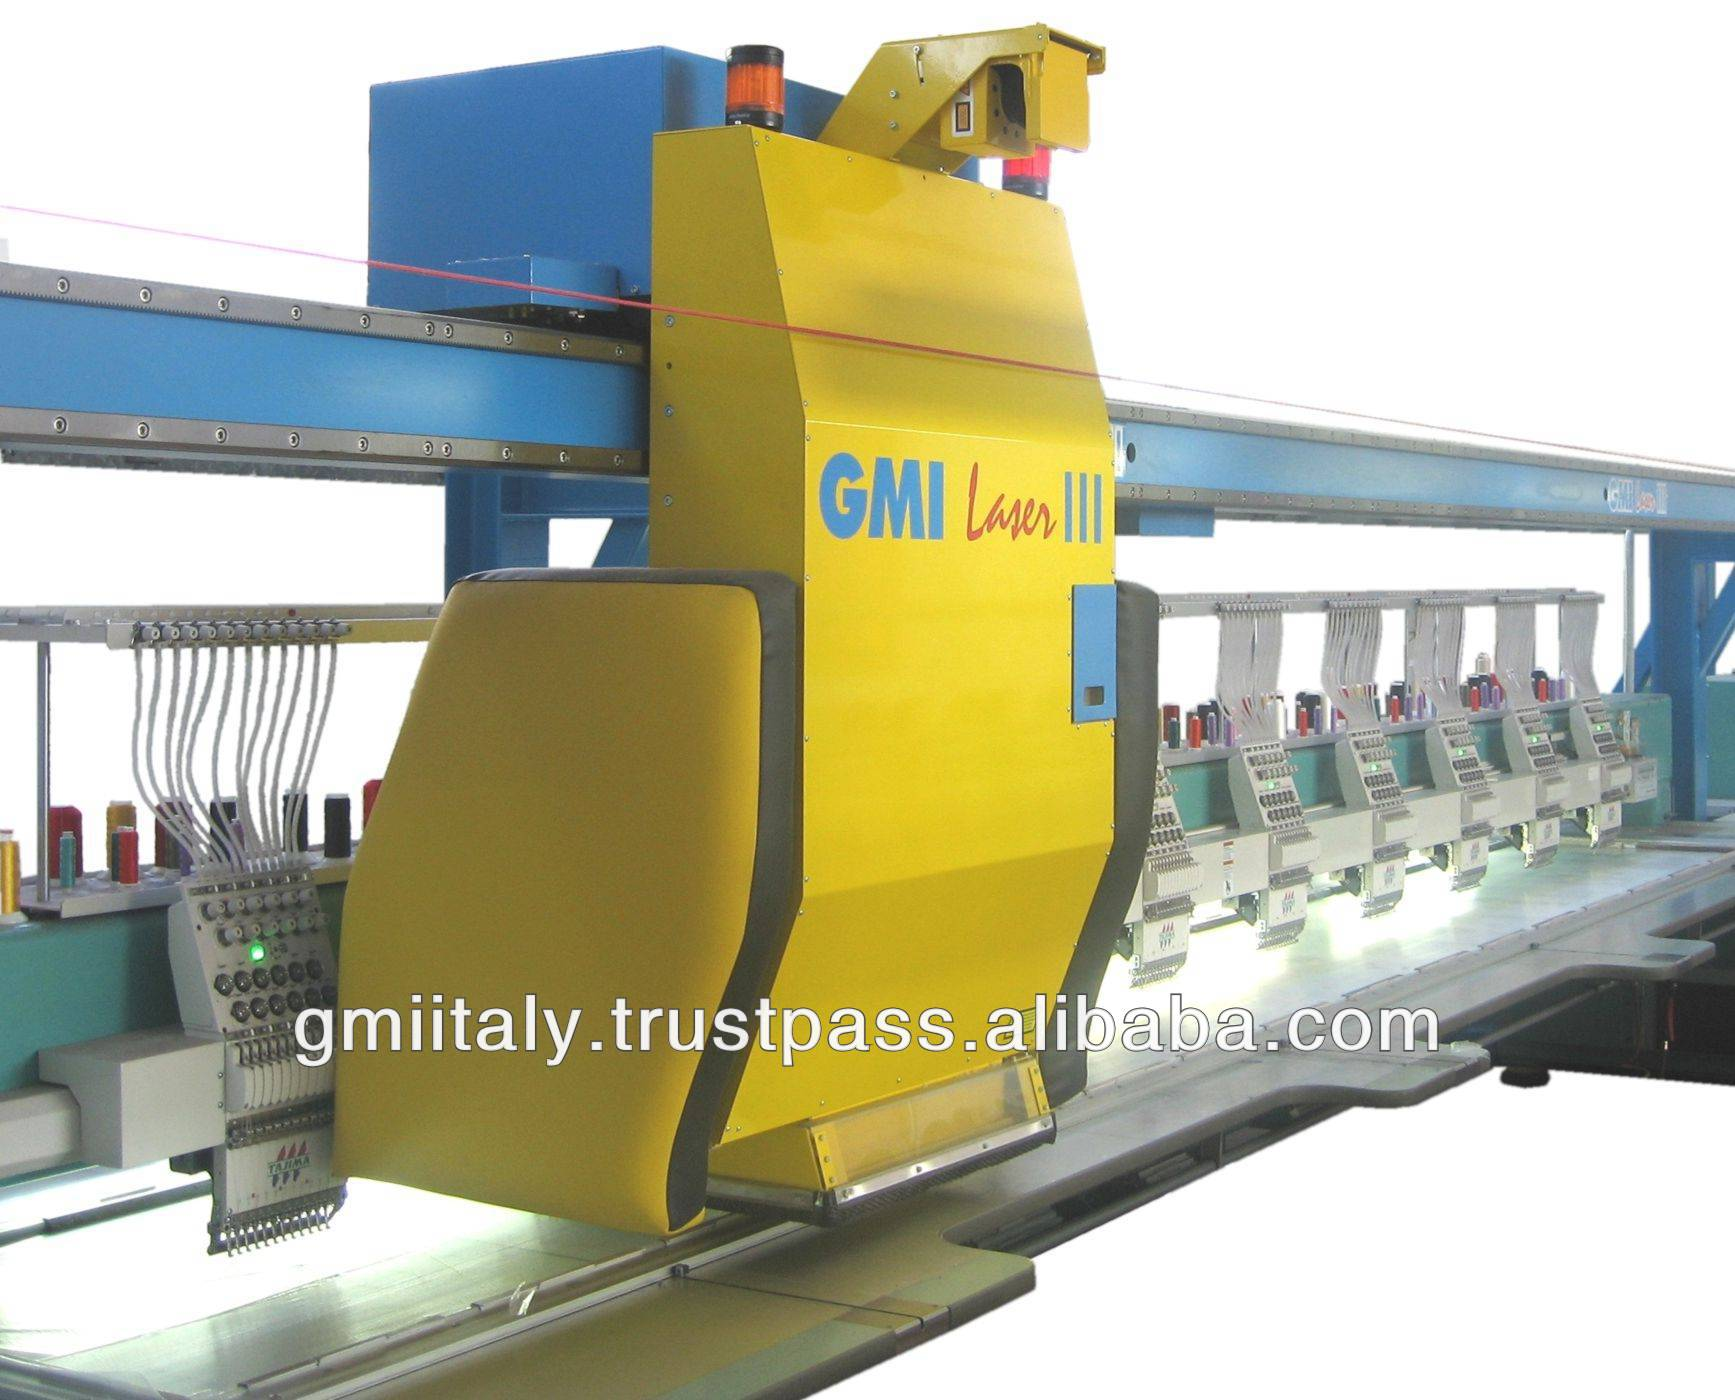 GMI Laser III 200w laser cutting machine